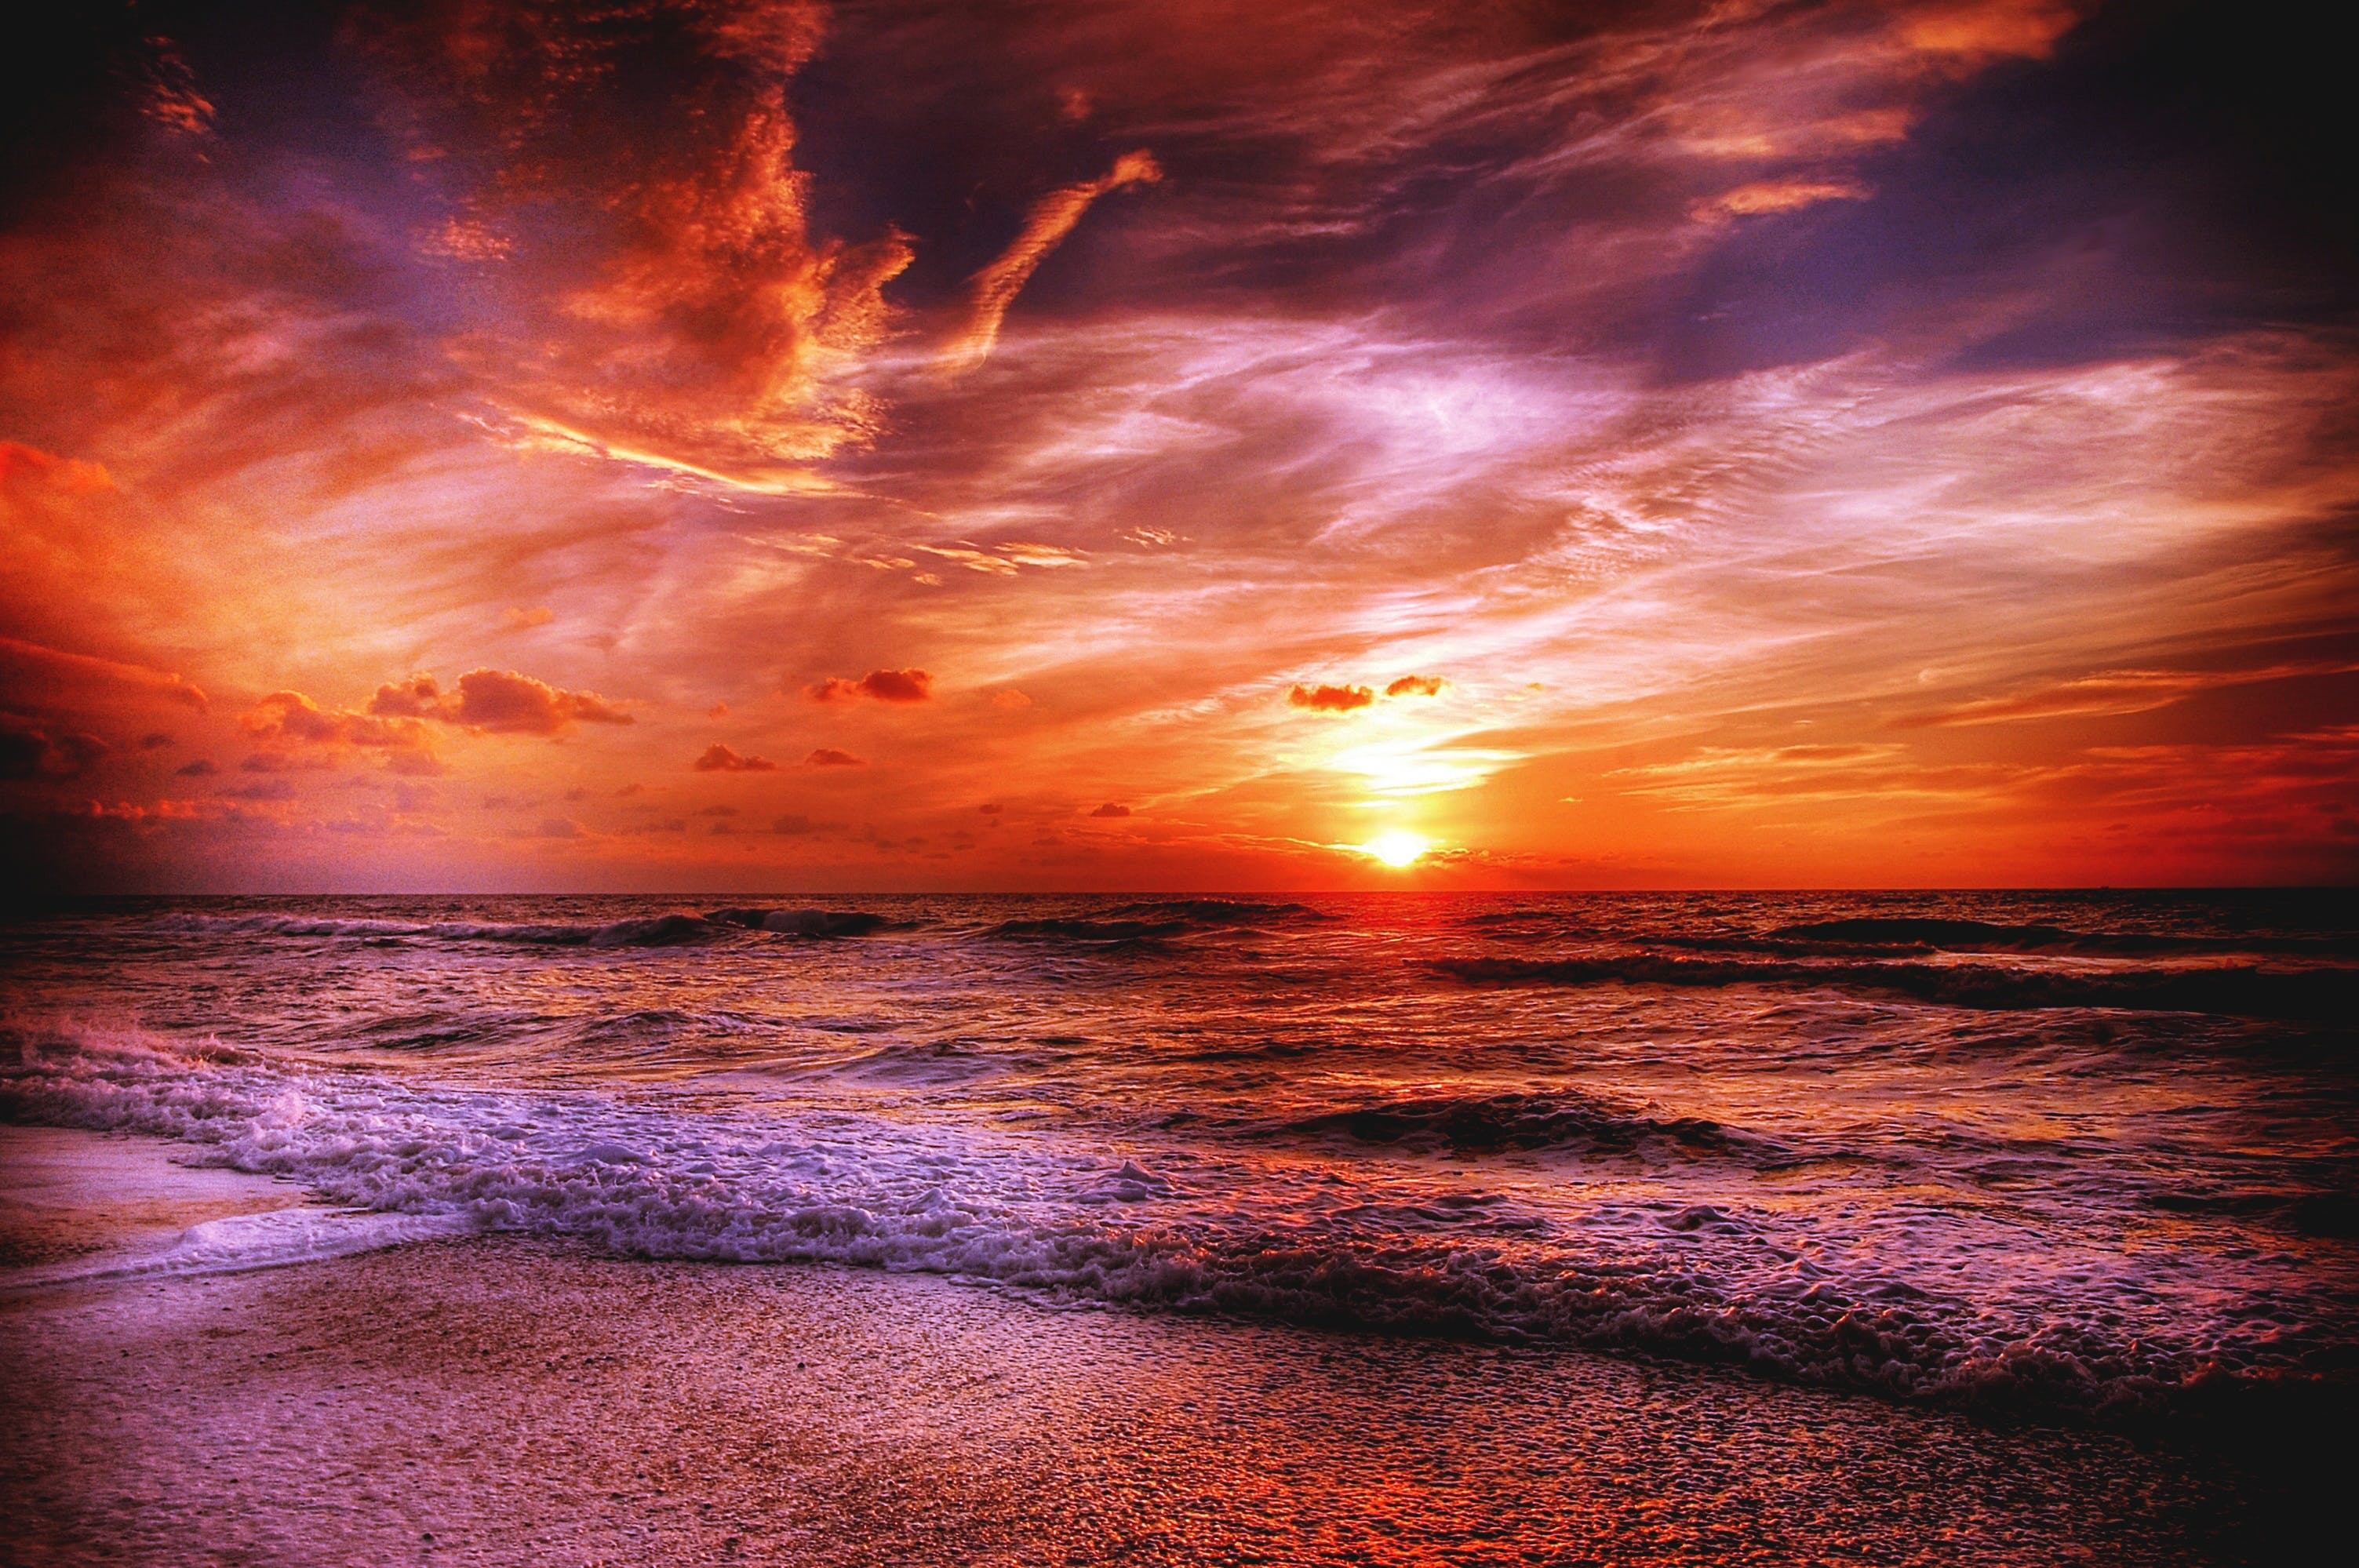 afterglow, beach, by the sea